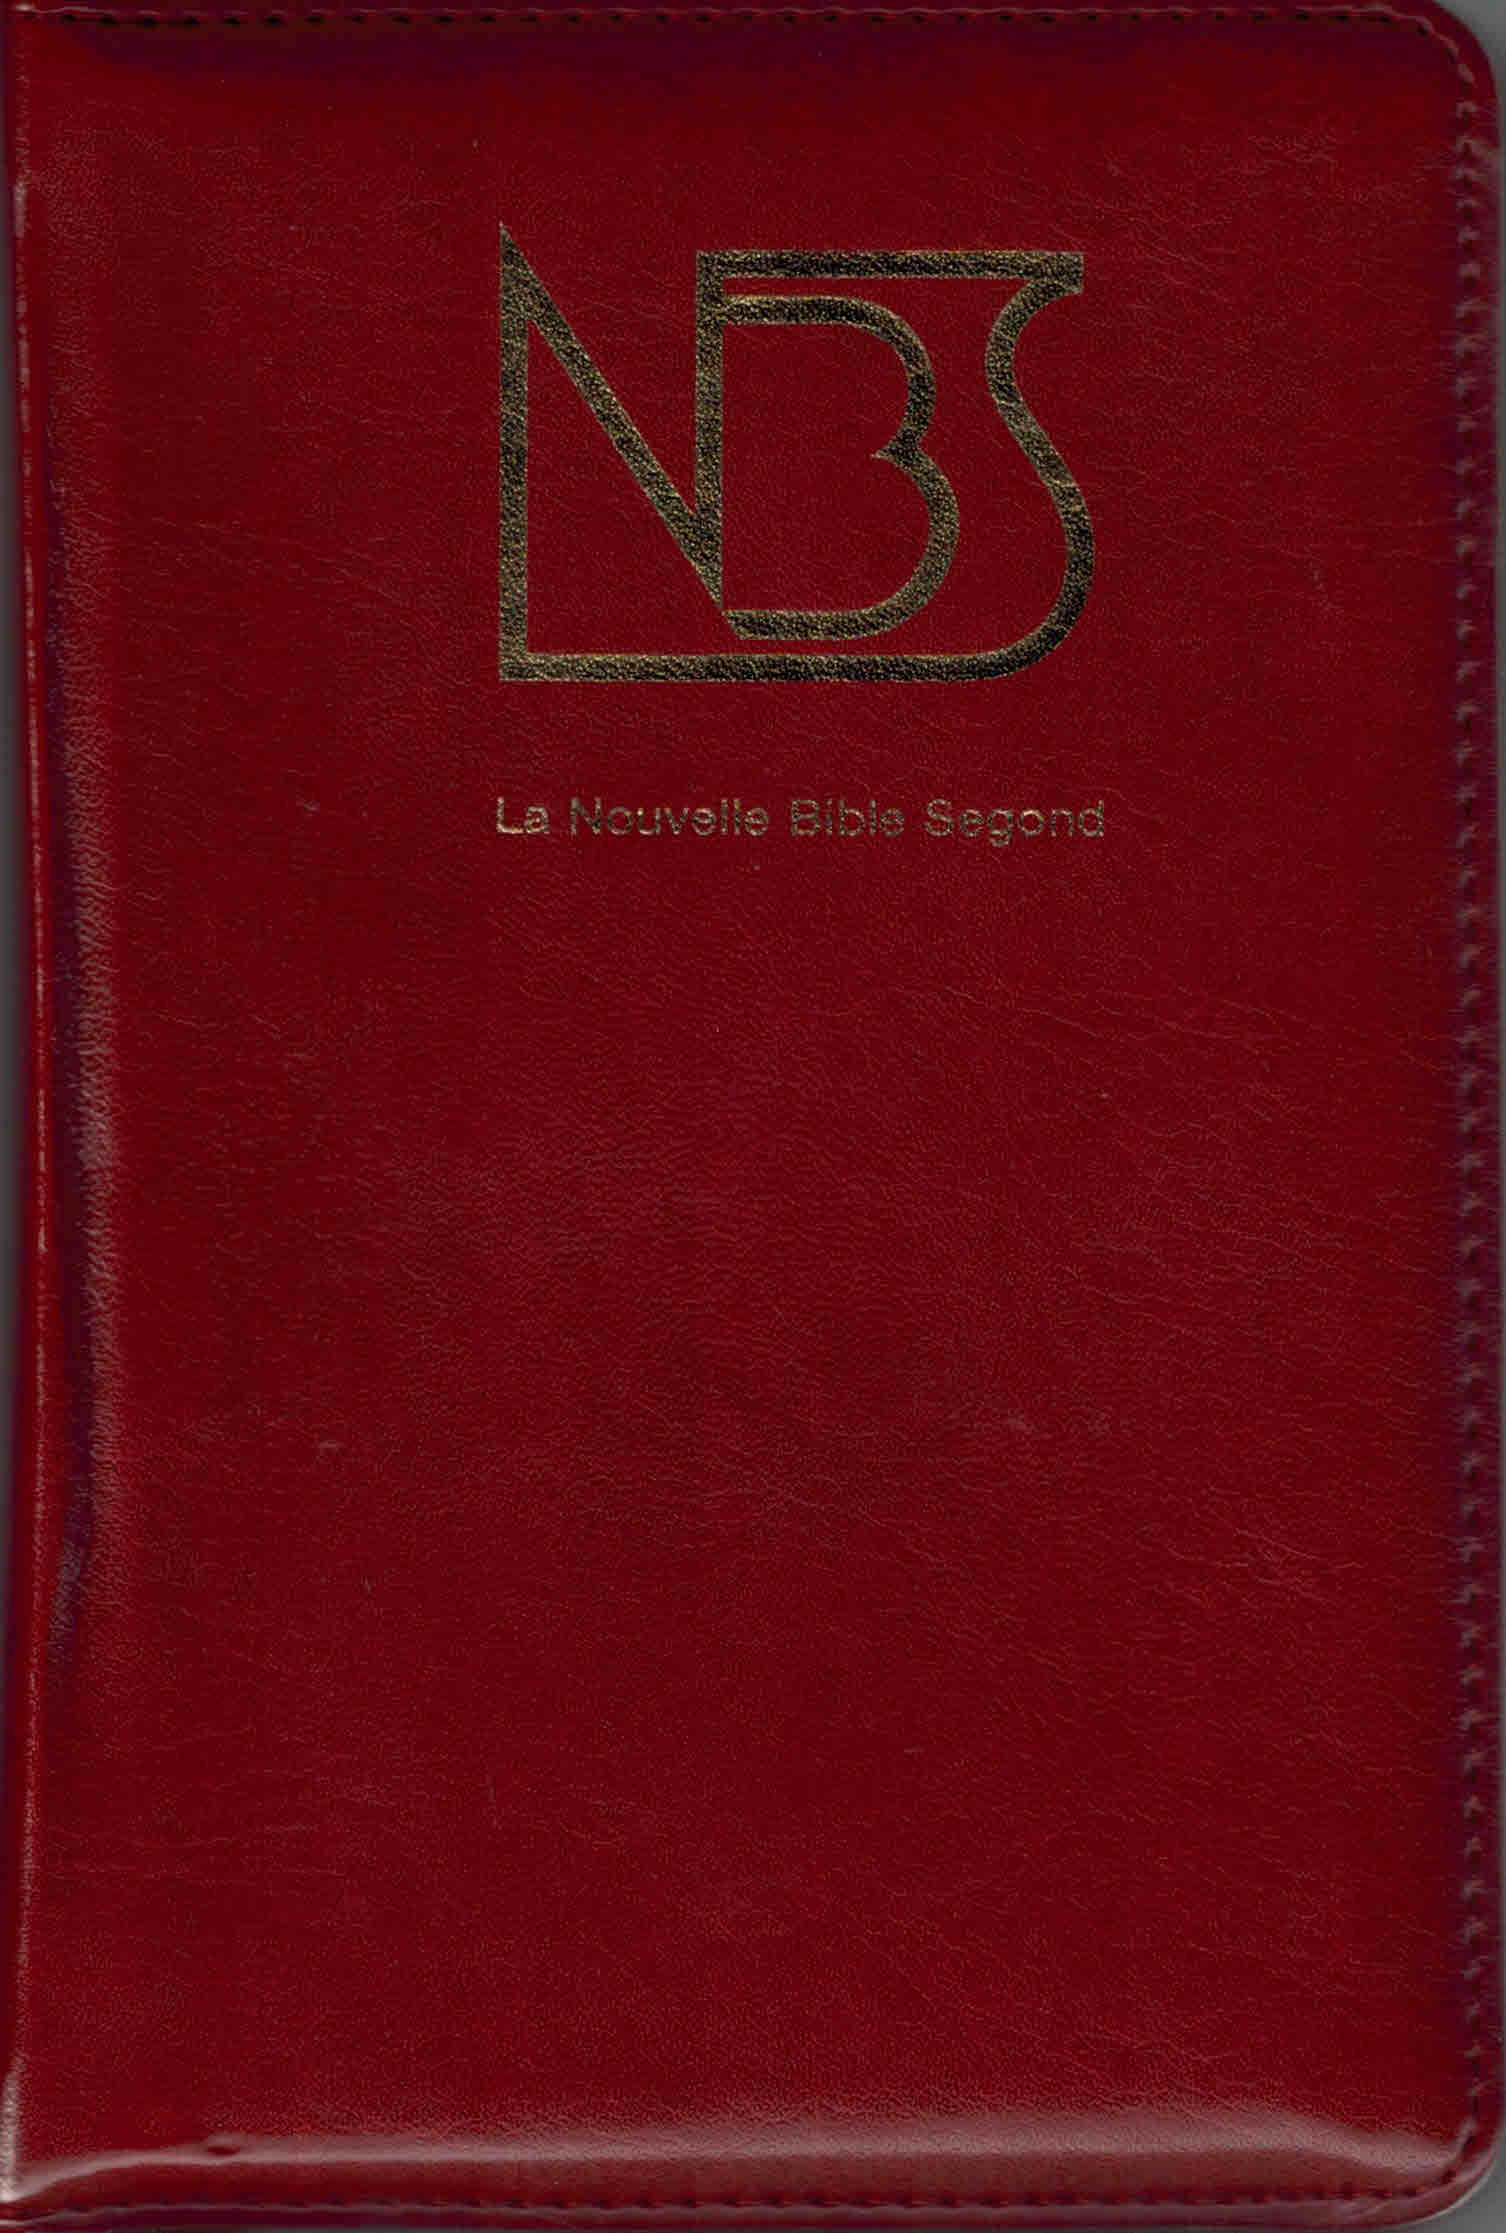 Bible NBS tranche or onglets glissière